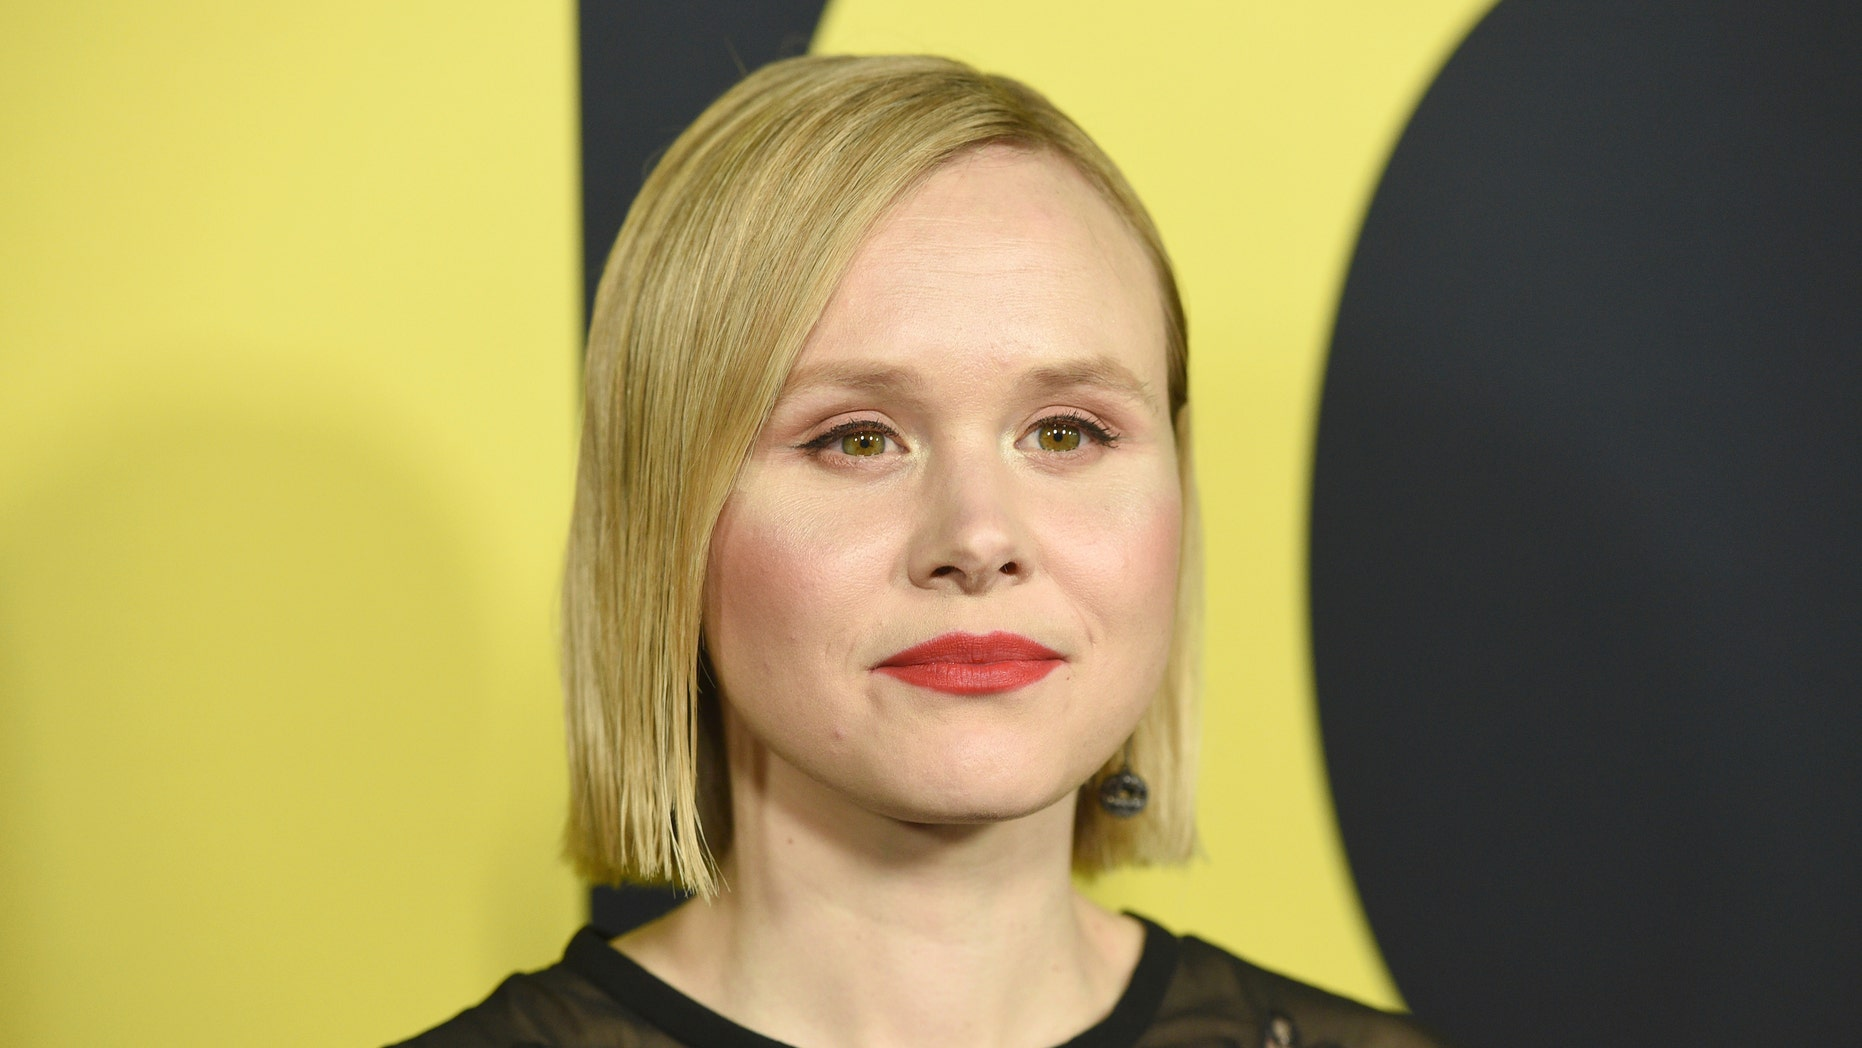 Alison Pill Hot vice' star alison pill says 'conservatives would write off